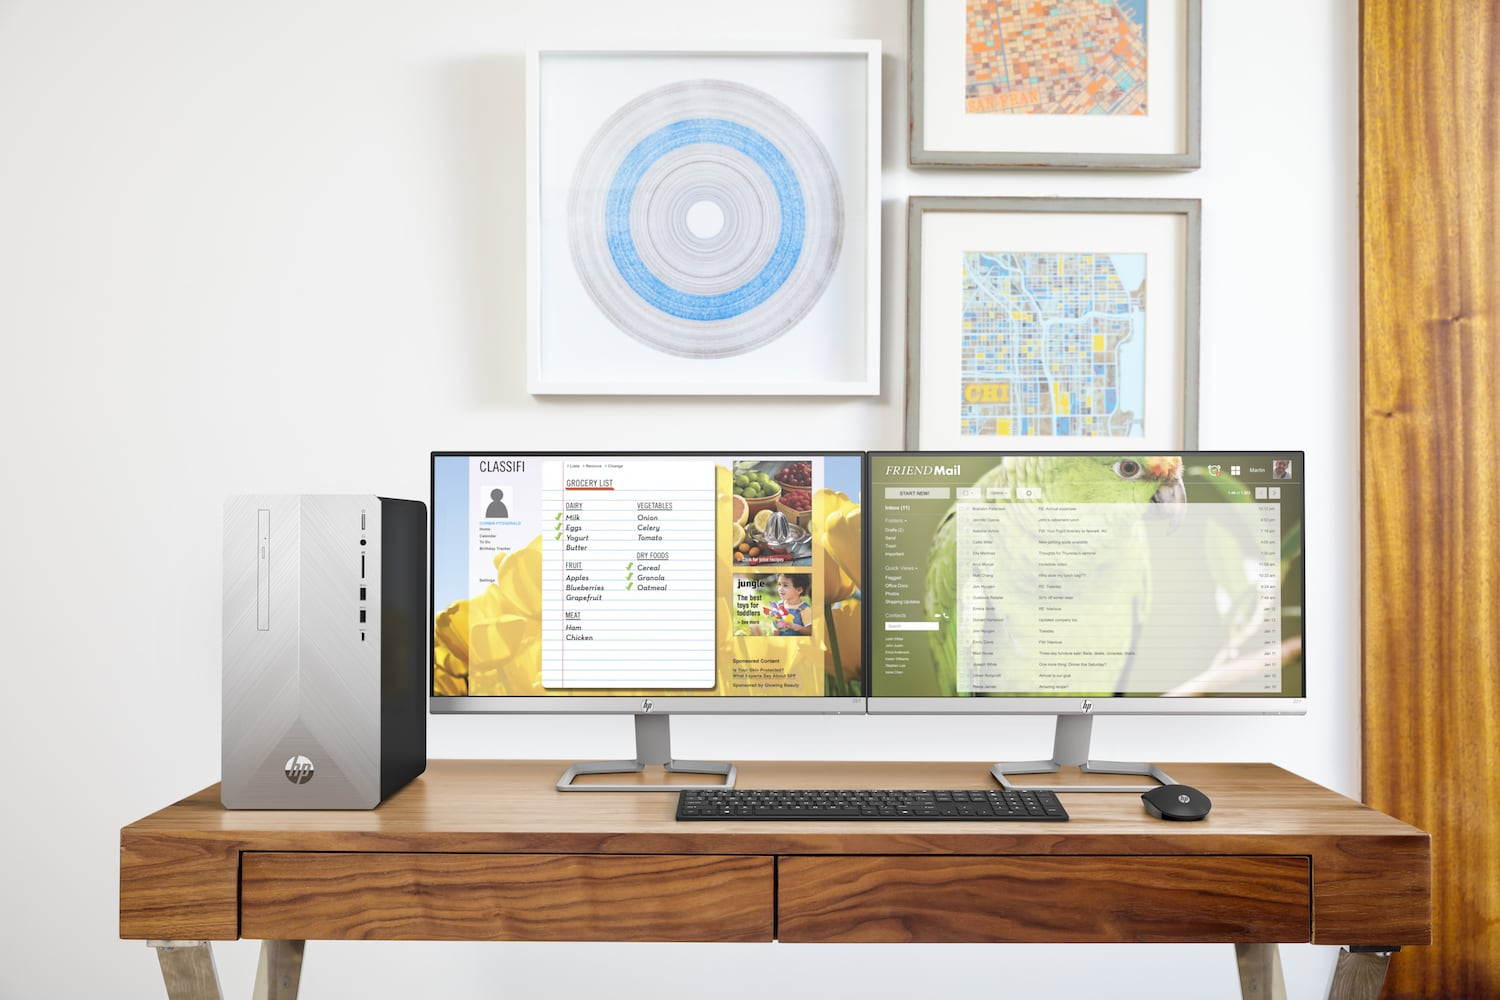 HP's new Pavilion desktop is insanely fast and affordable